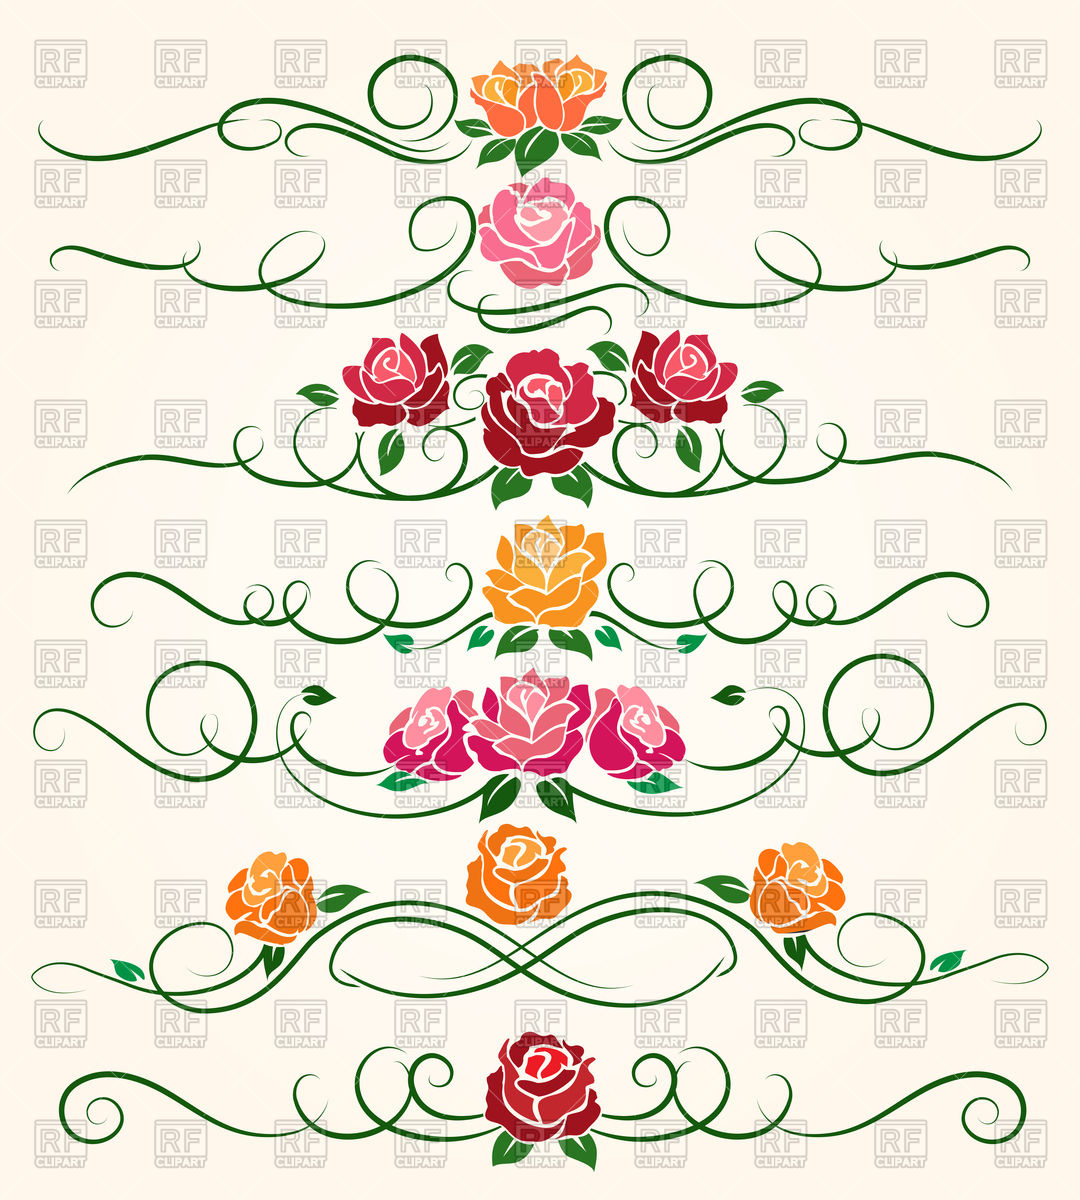 Decorative flourish borders and rose flower dividers Stock Vector Image.